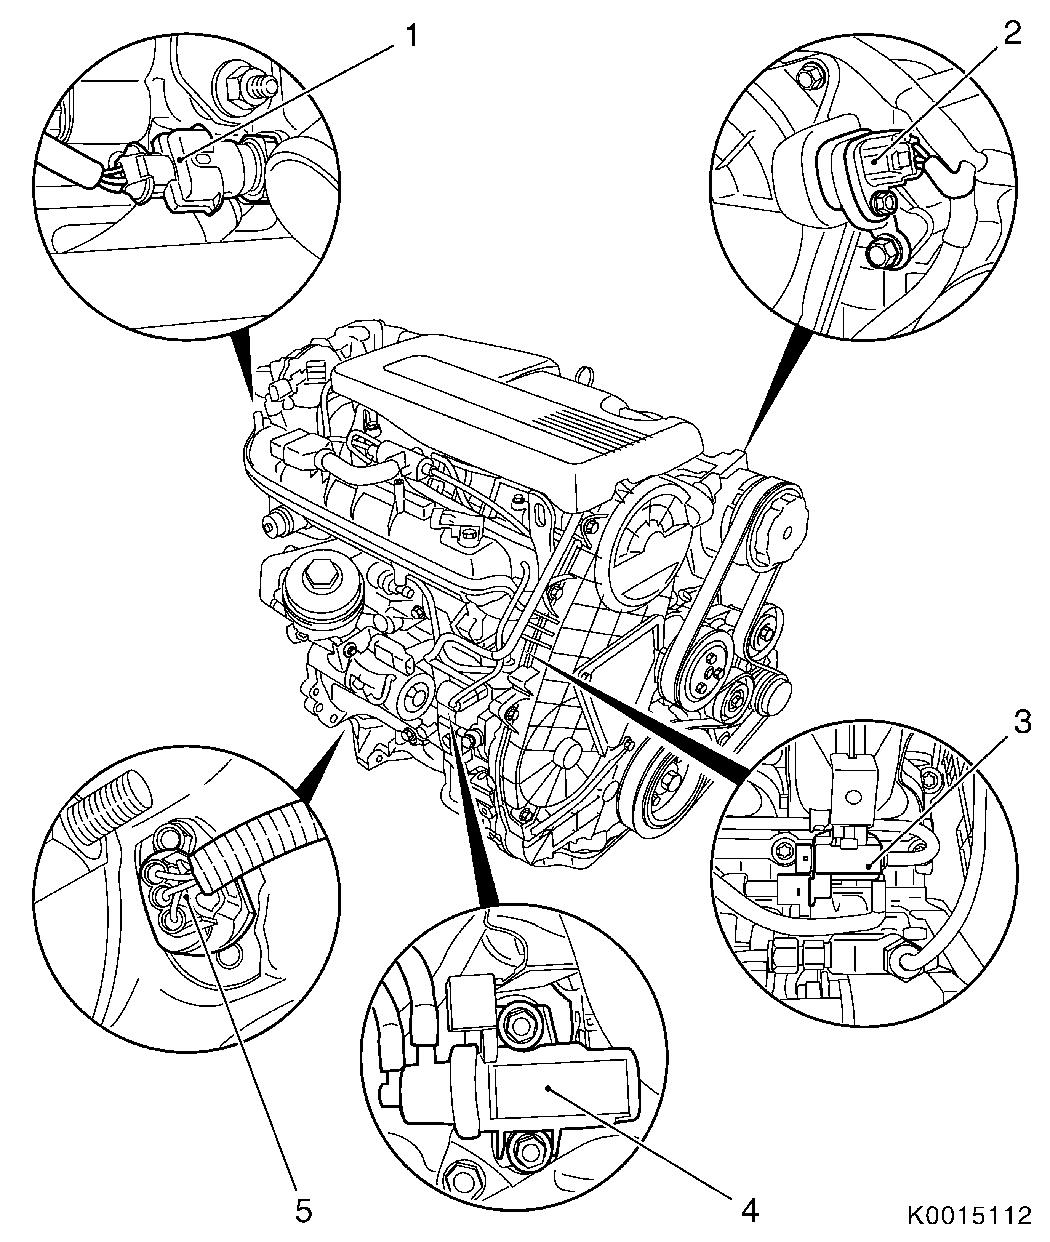 2011 Chevy Cruze Thermostat Location further 2000 Toyota Tundra Air Filter Replacement further Bldc Motor Control Circuit Diagram in addition 95 F150 Fuel Pump Relay Location additionally 98 Xj Wont Fire After Transmission Rebuild 142635. on fuse box vauxhall corsa c